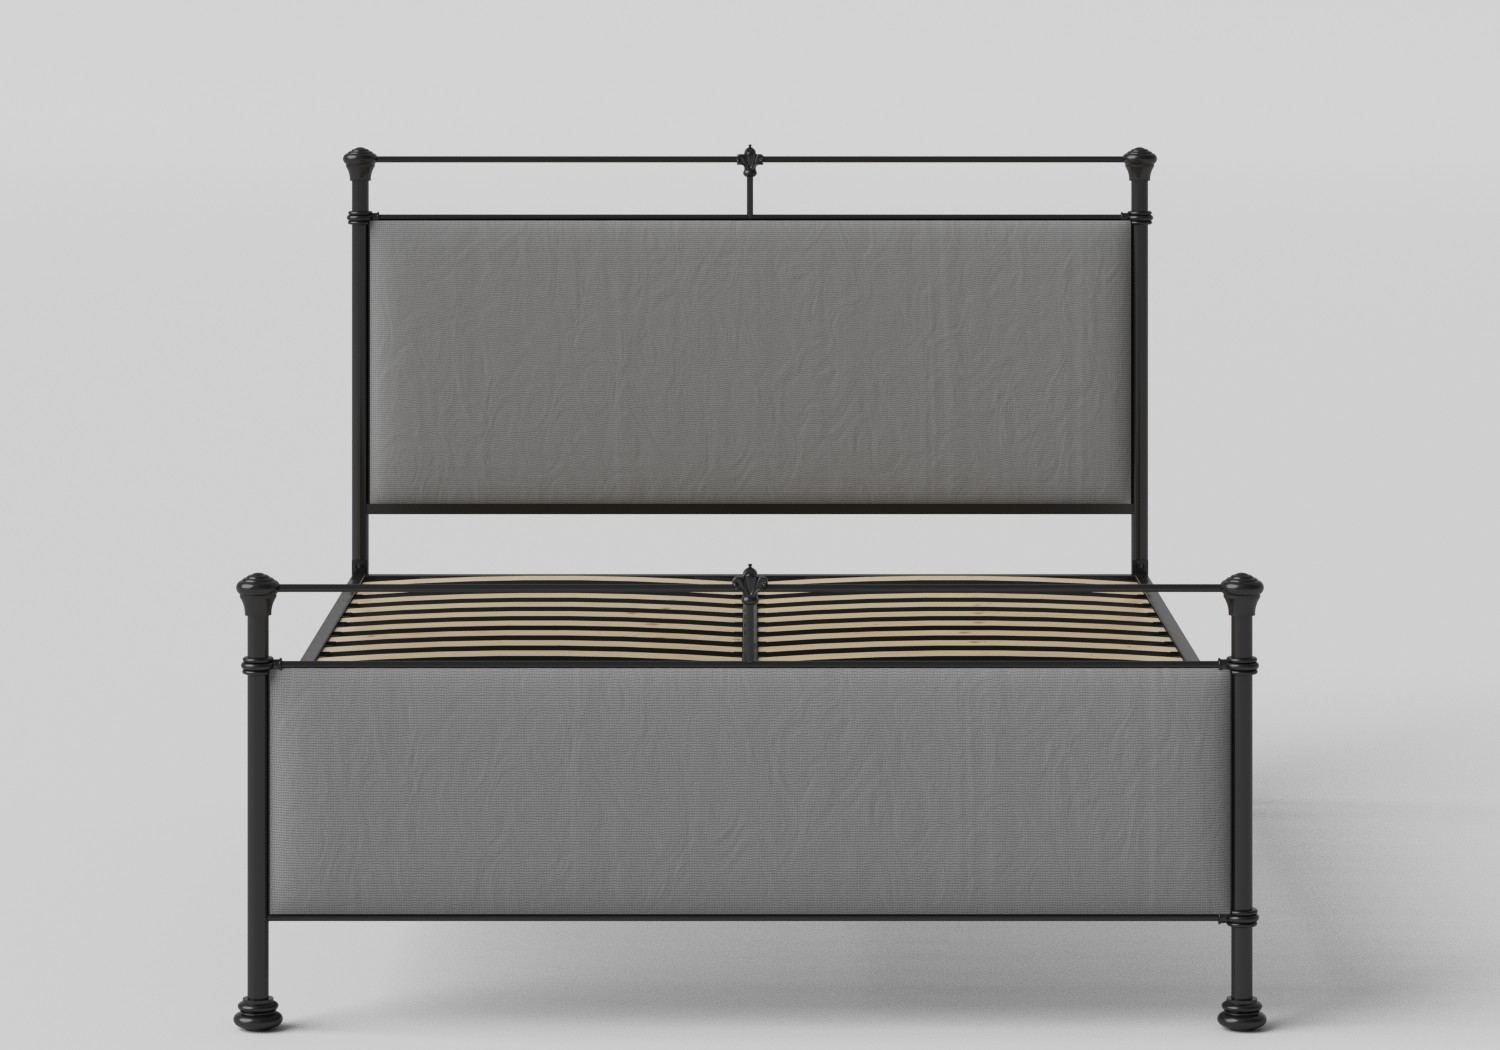 Nancy Iron/Metal Upholstered Bed in Satin Black with Grey fabric shown with slatted frame